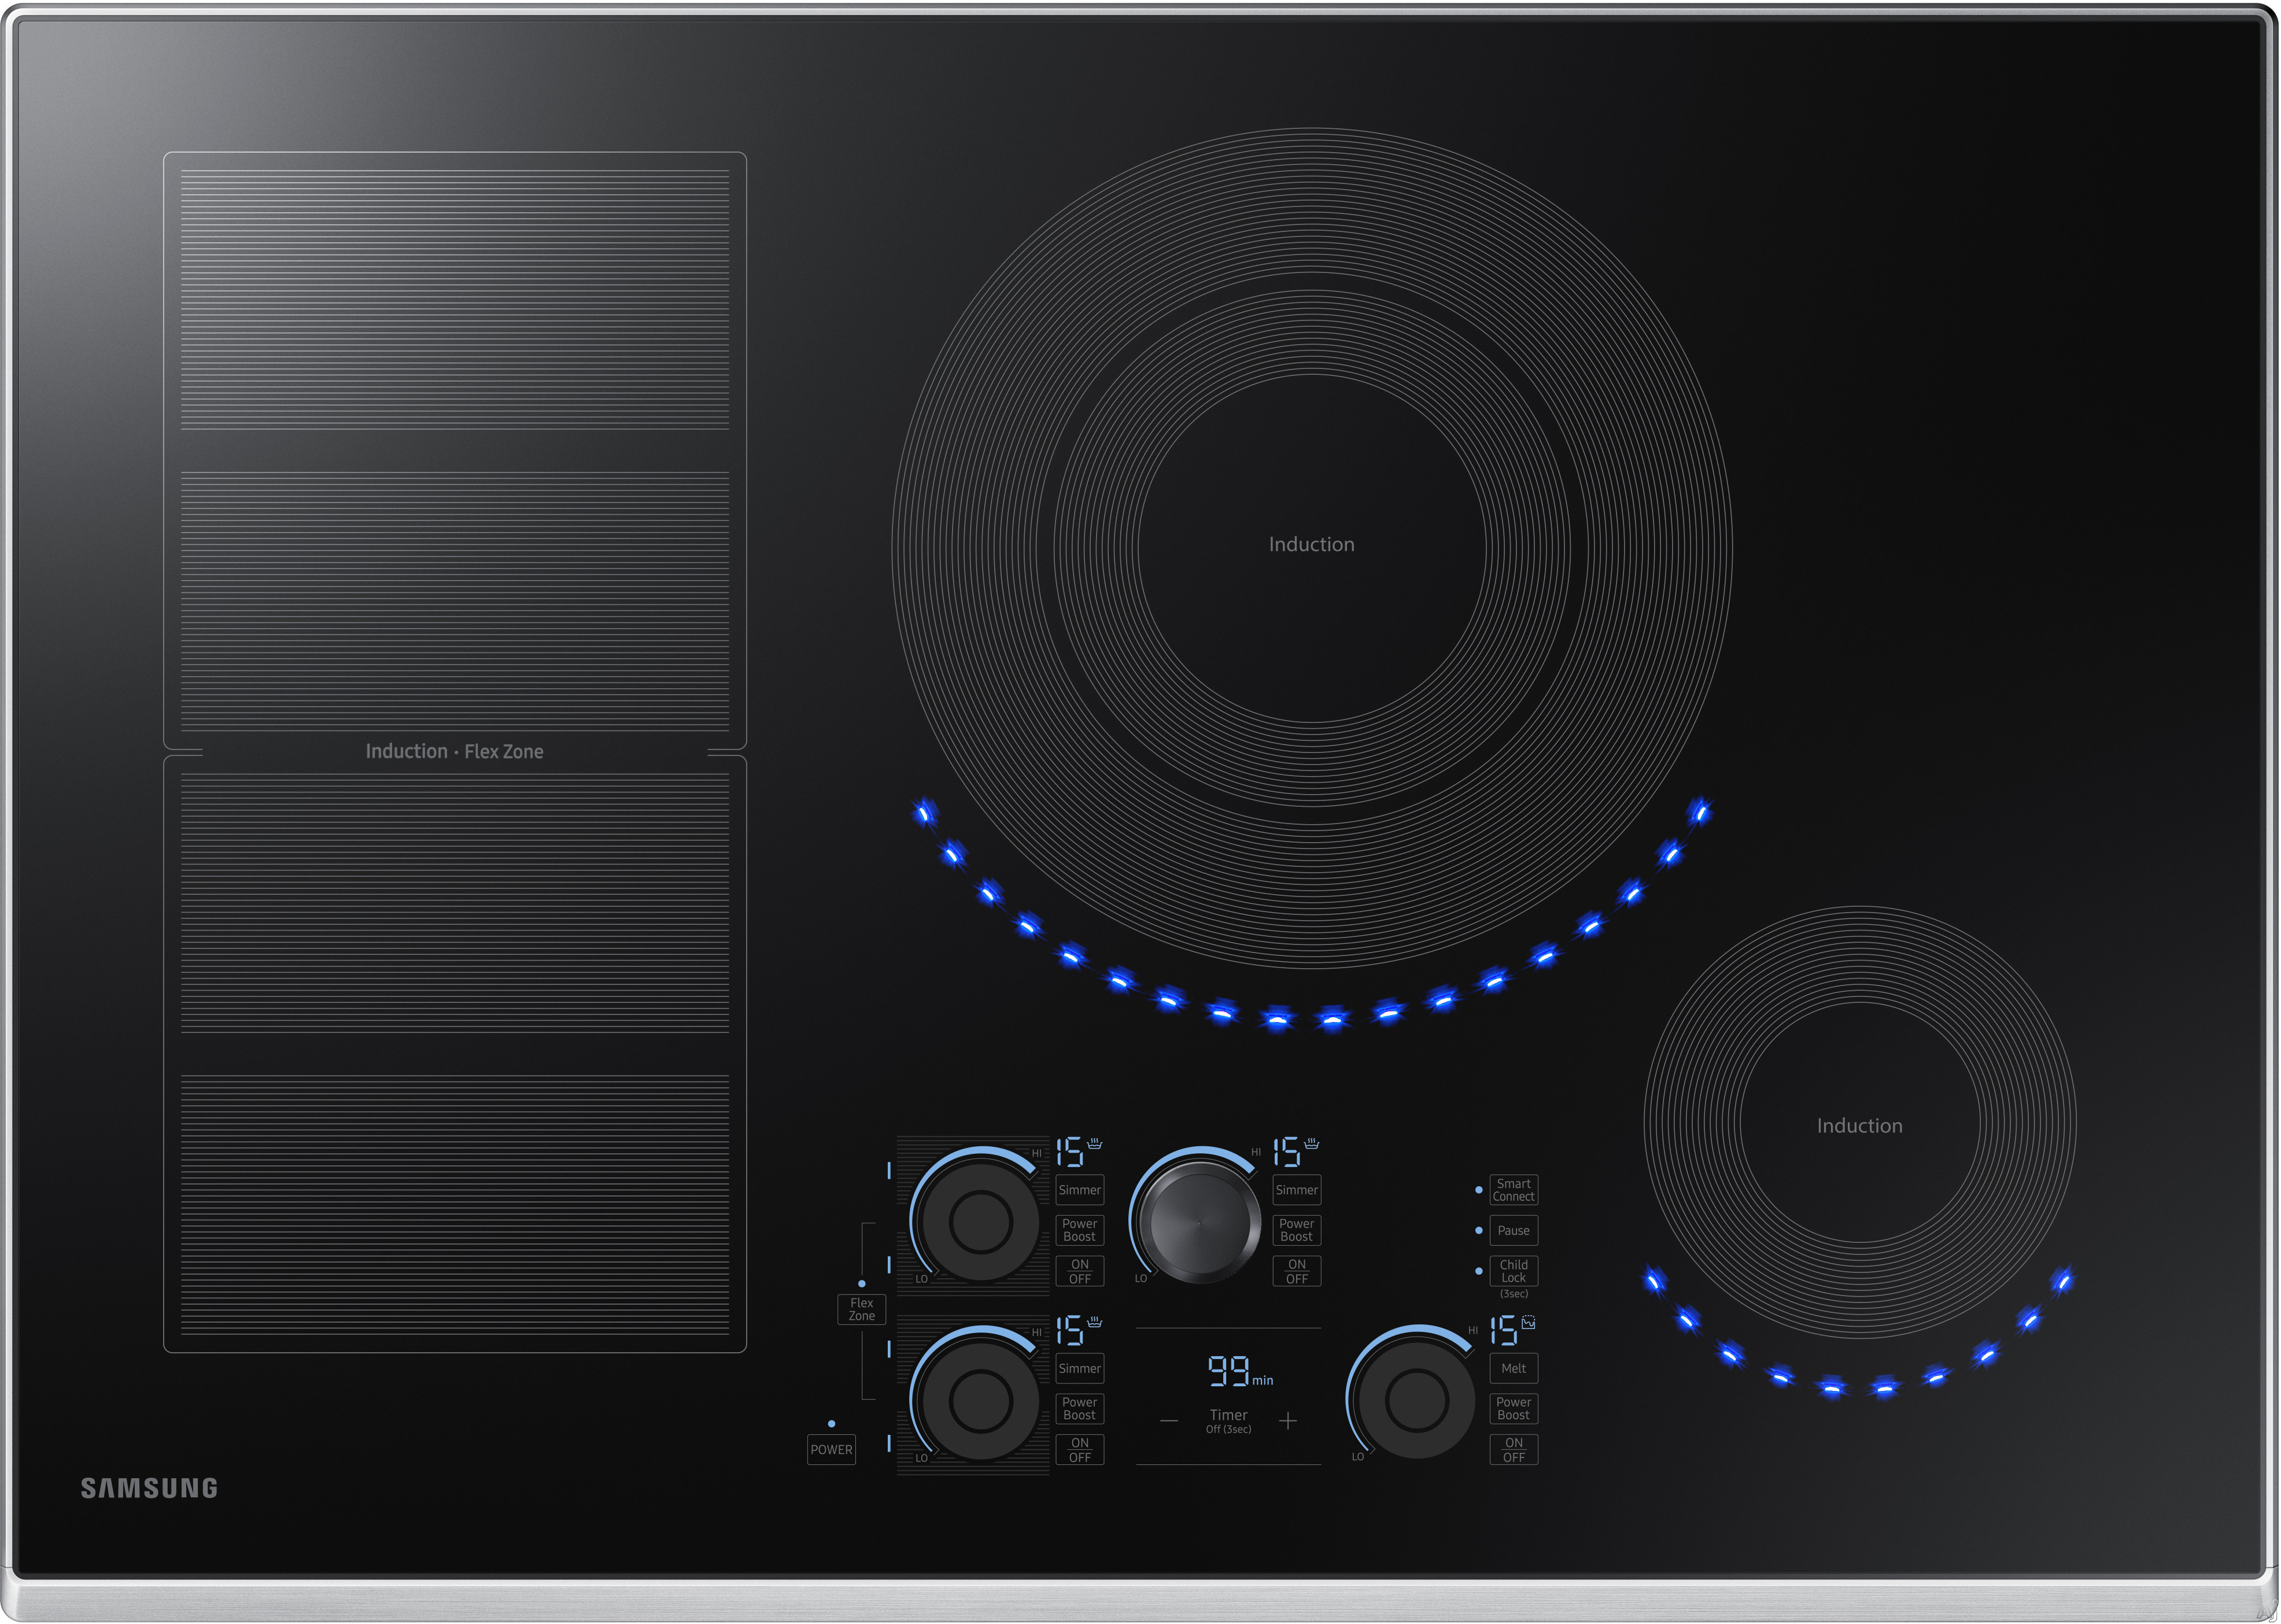 Samsung NZ30K7880US 30 Inch Induction Cooktop with Flex Zone, 15 Heat Settings, Power Boost, Melt Mode, Simmer Control, Virtual Flame Surface Lights, Timer, Control Lock and Wi-Fi Connectivity: Stainl